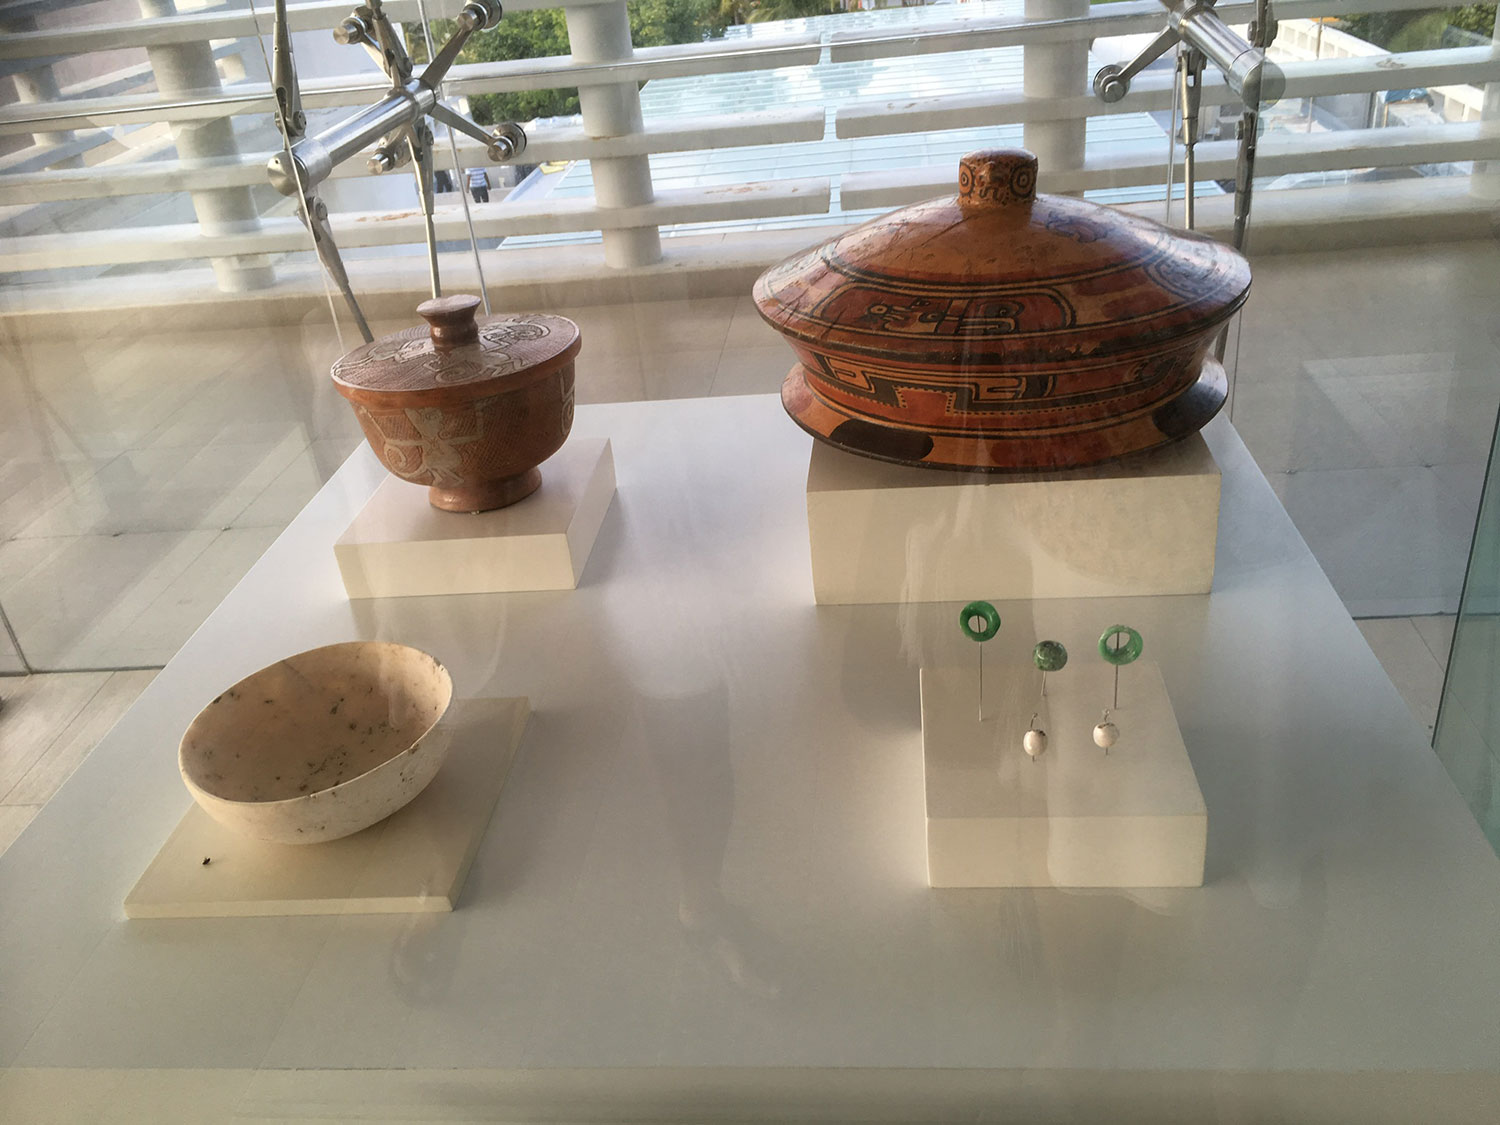 Ceramic pots, now at the Mayan Museum in Cancún.